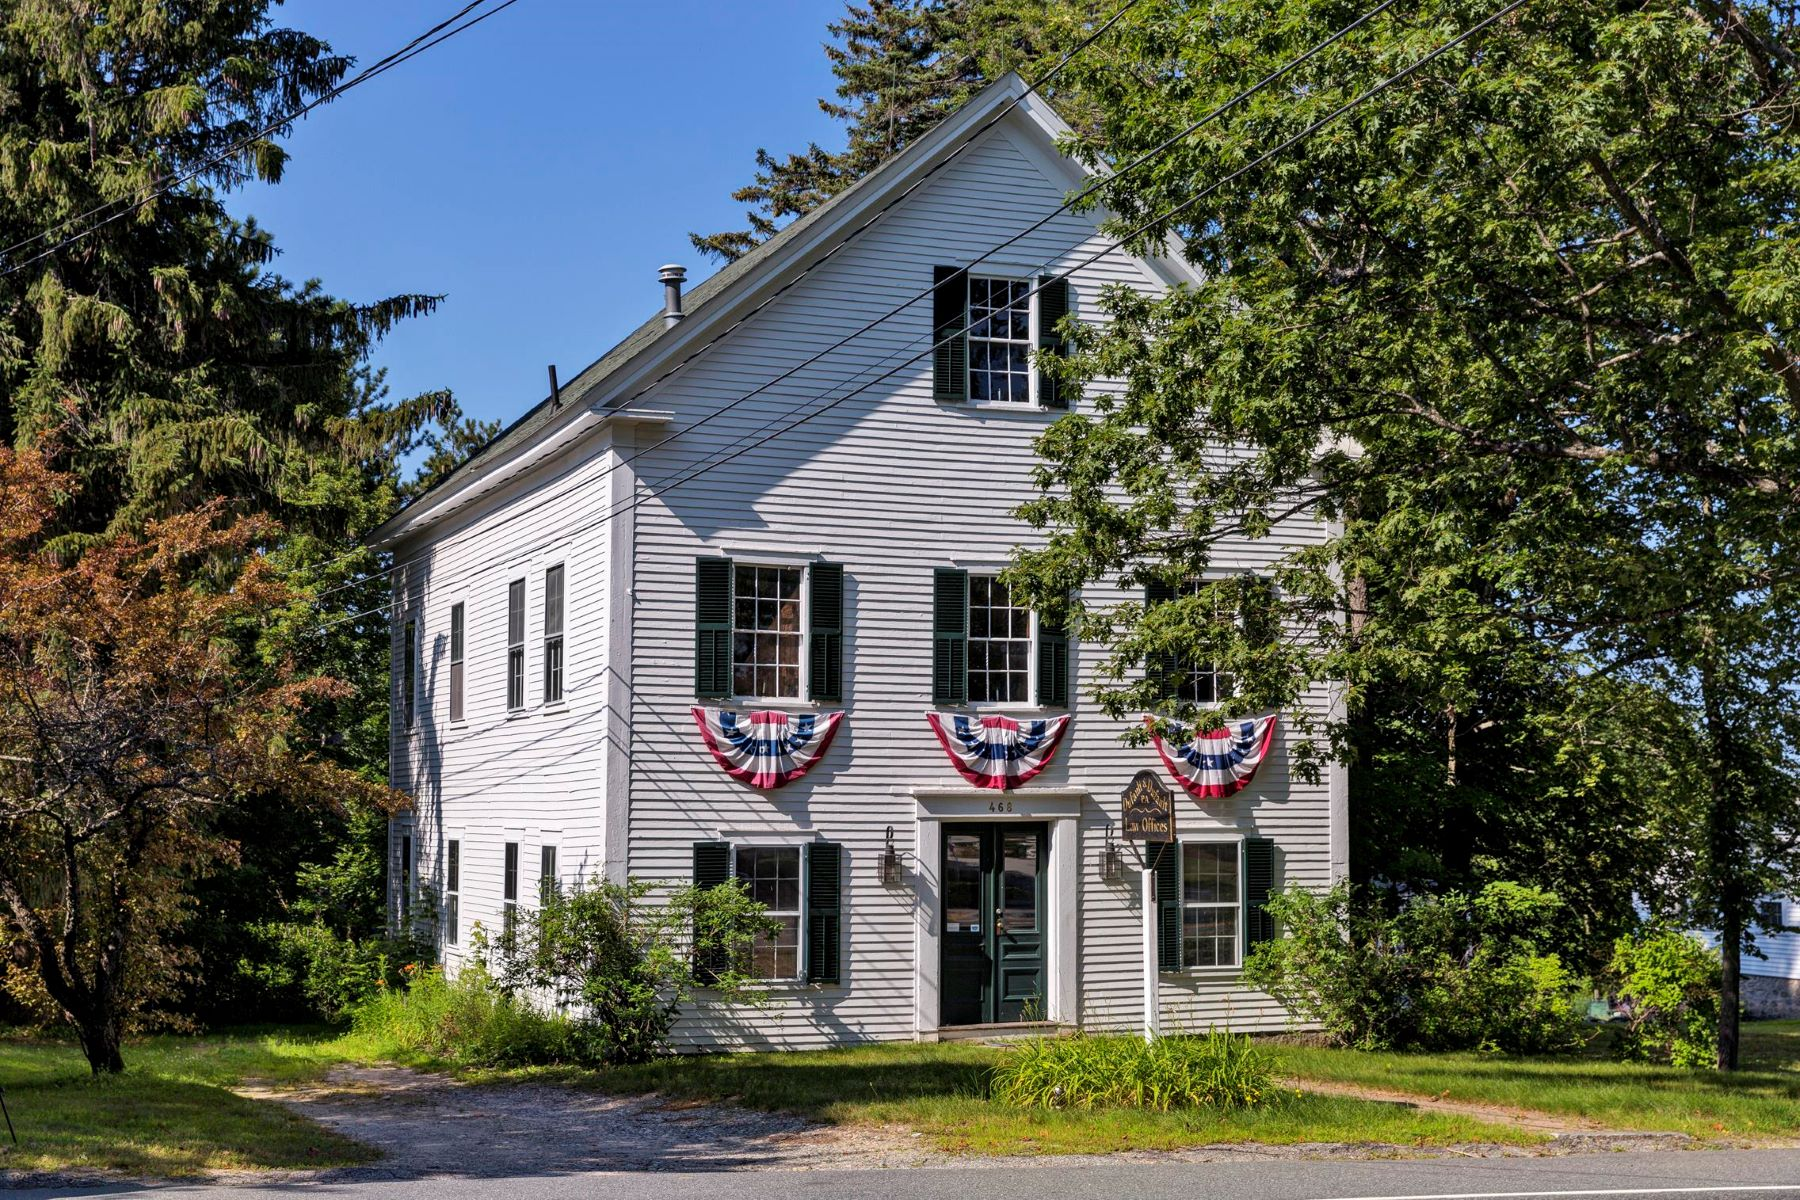 Single Family Homes for Sale at The Historic Grange 468 Main Street New London, New Hampshire 03257 United States